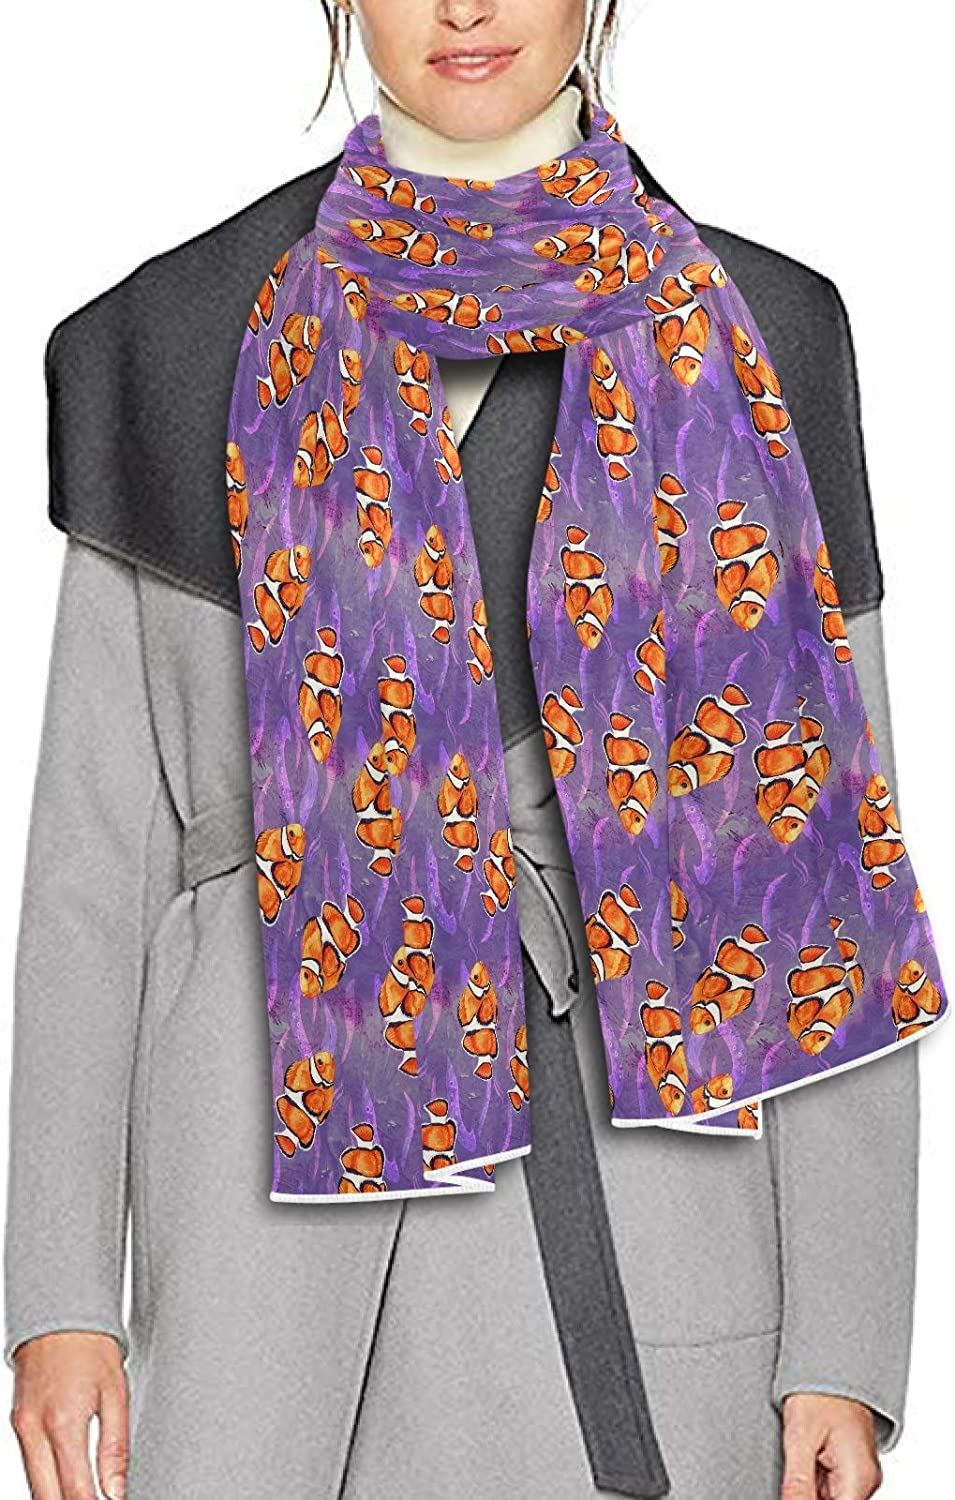 Scarf for Women and Men Clownfish Blanket Shawl Scarf wraps Soft Winter Large Scarves Lightweight